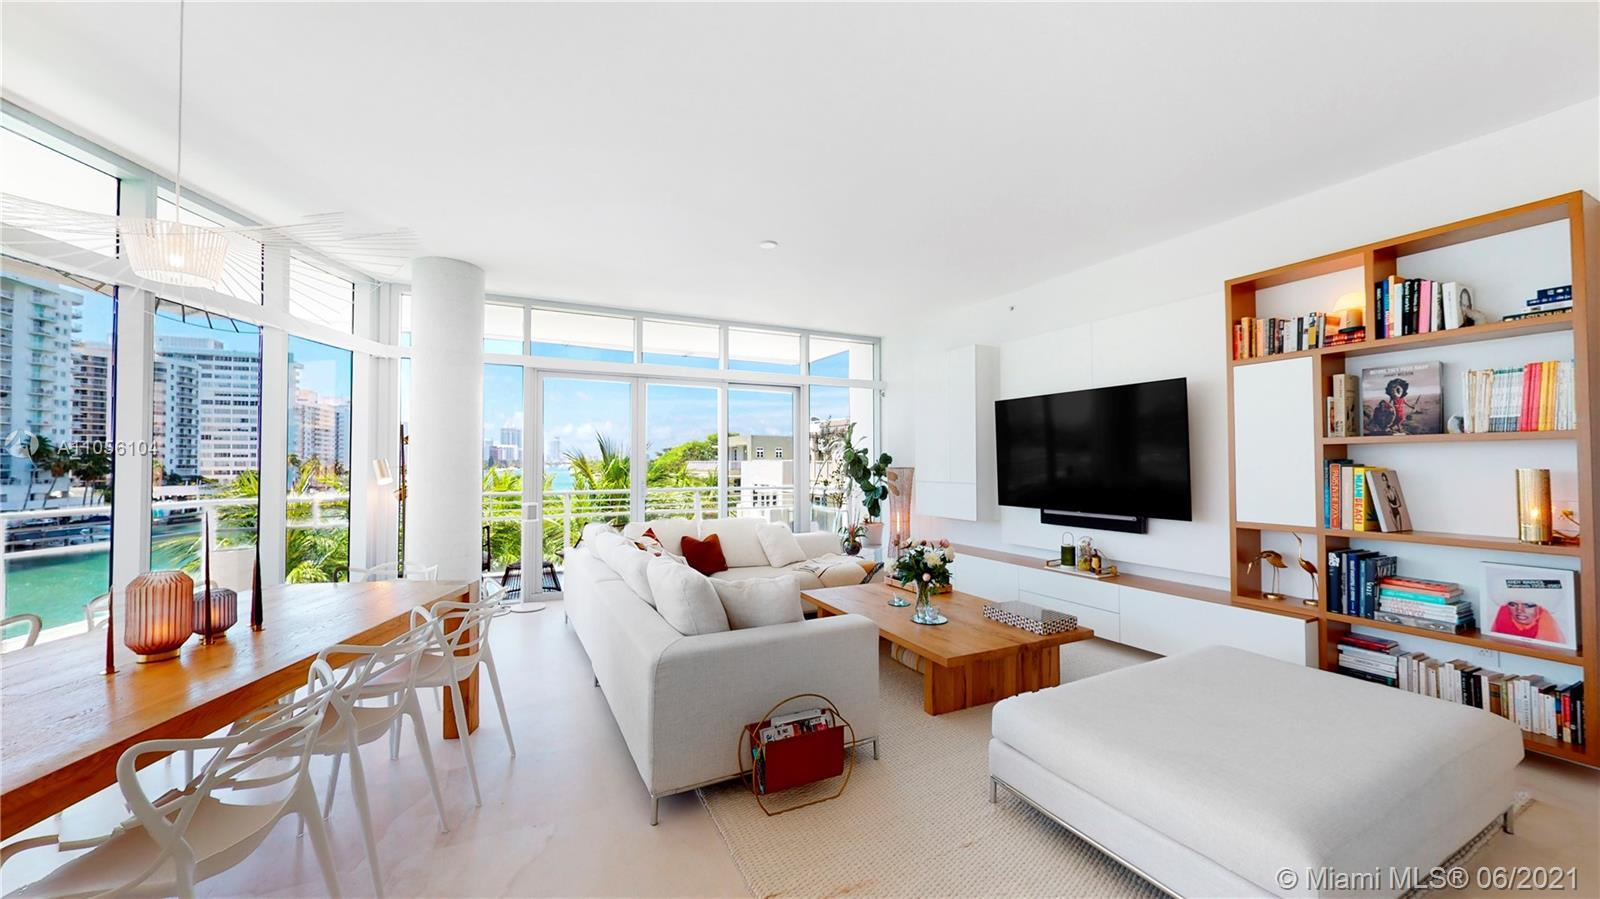 Exquisitely renovated 3 bed condo in sought after Aqua community - Allison Island. This rare SE corn